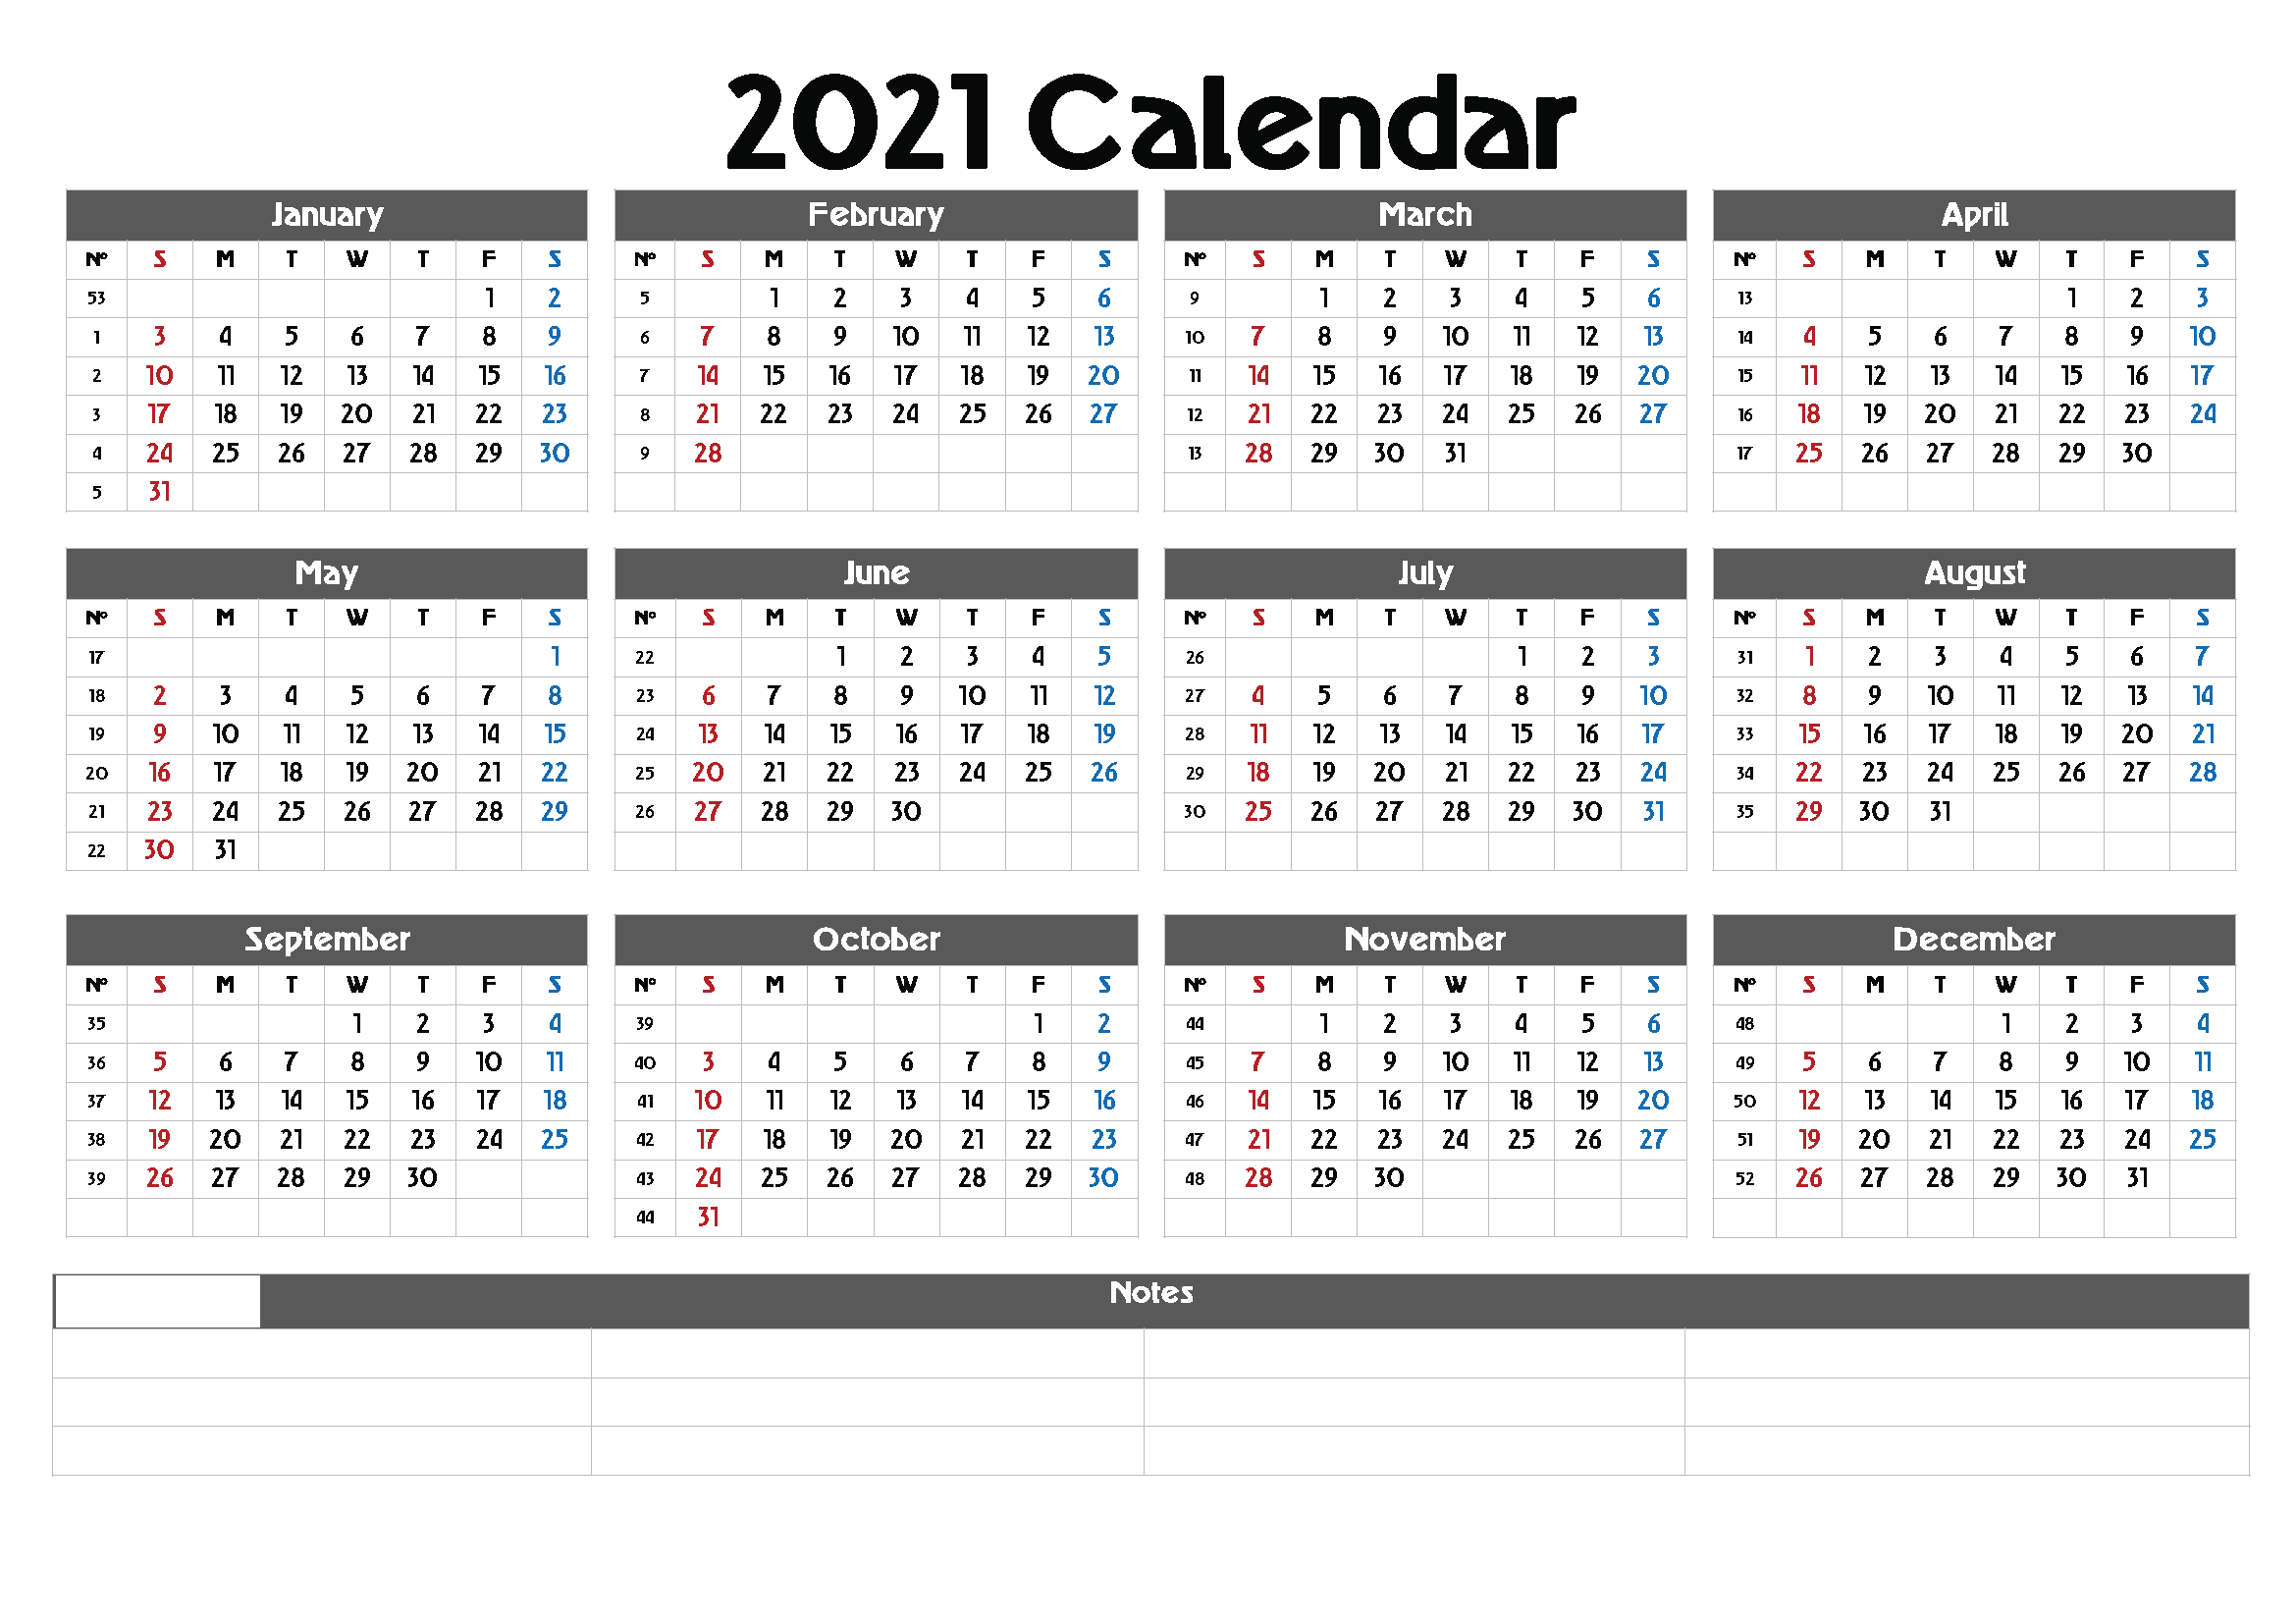 Blank Calendar 2021 with Notes